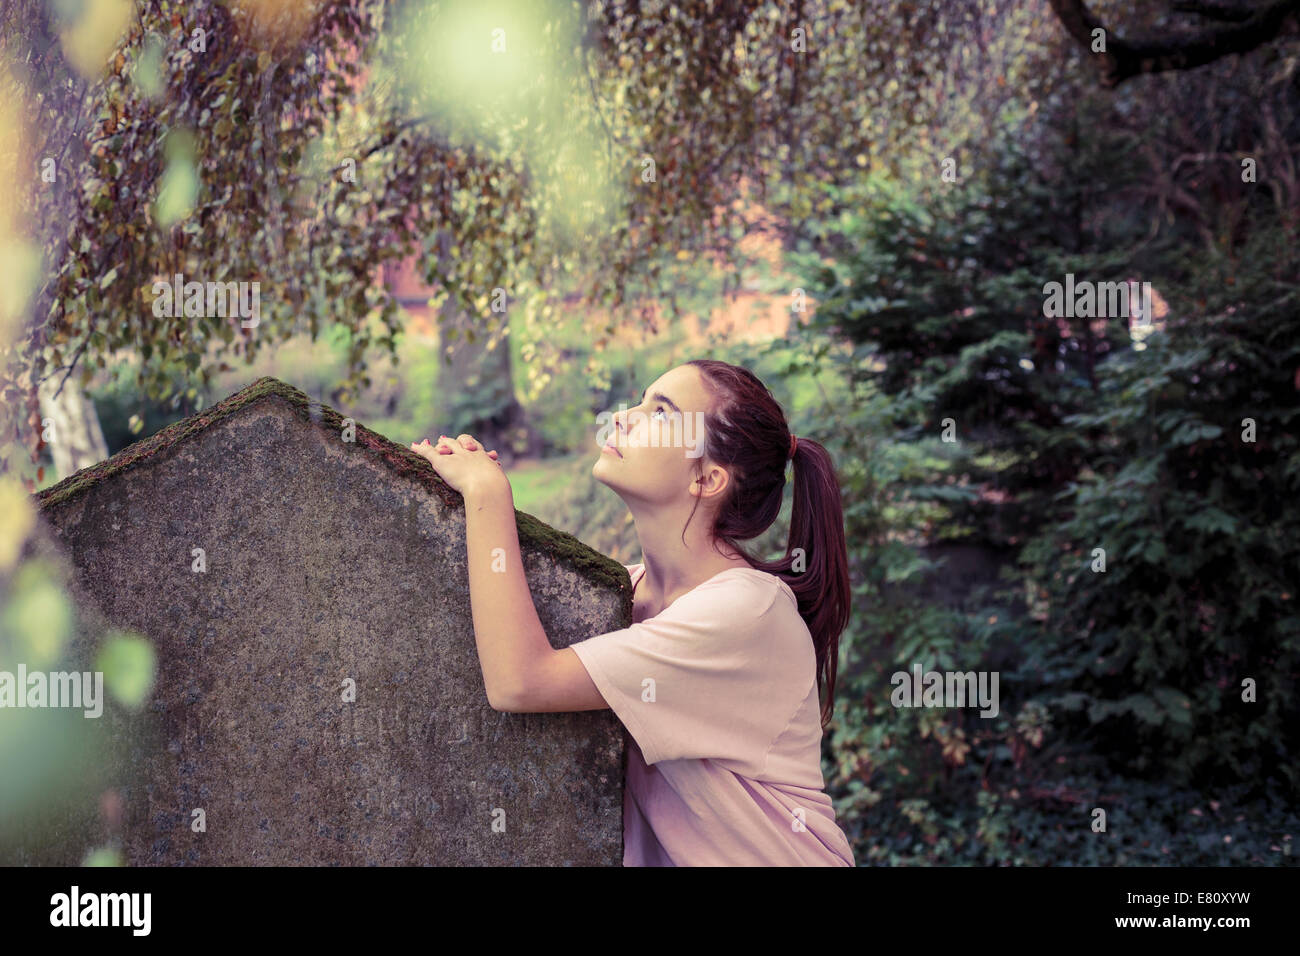 vintage shoot of a woman touching a moss overgrown tombstone - Stock Image